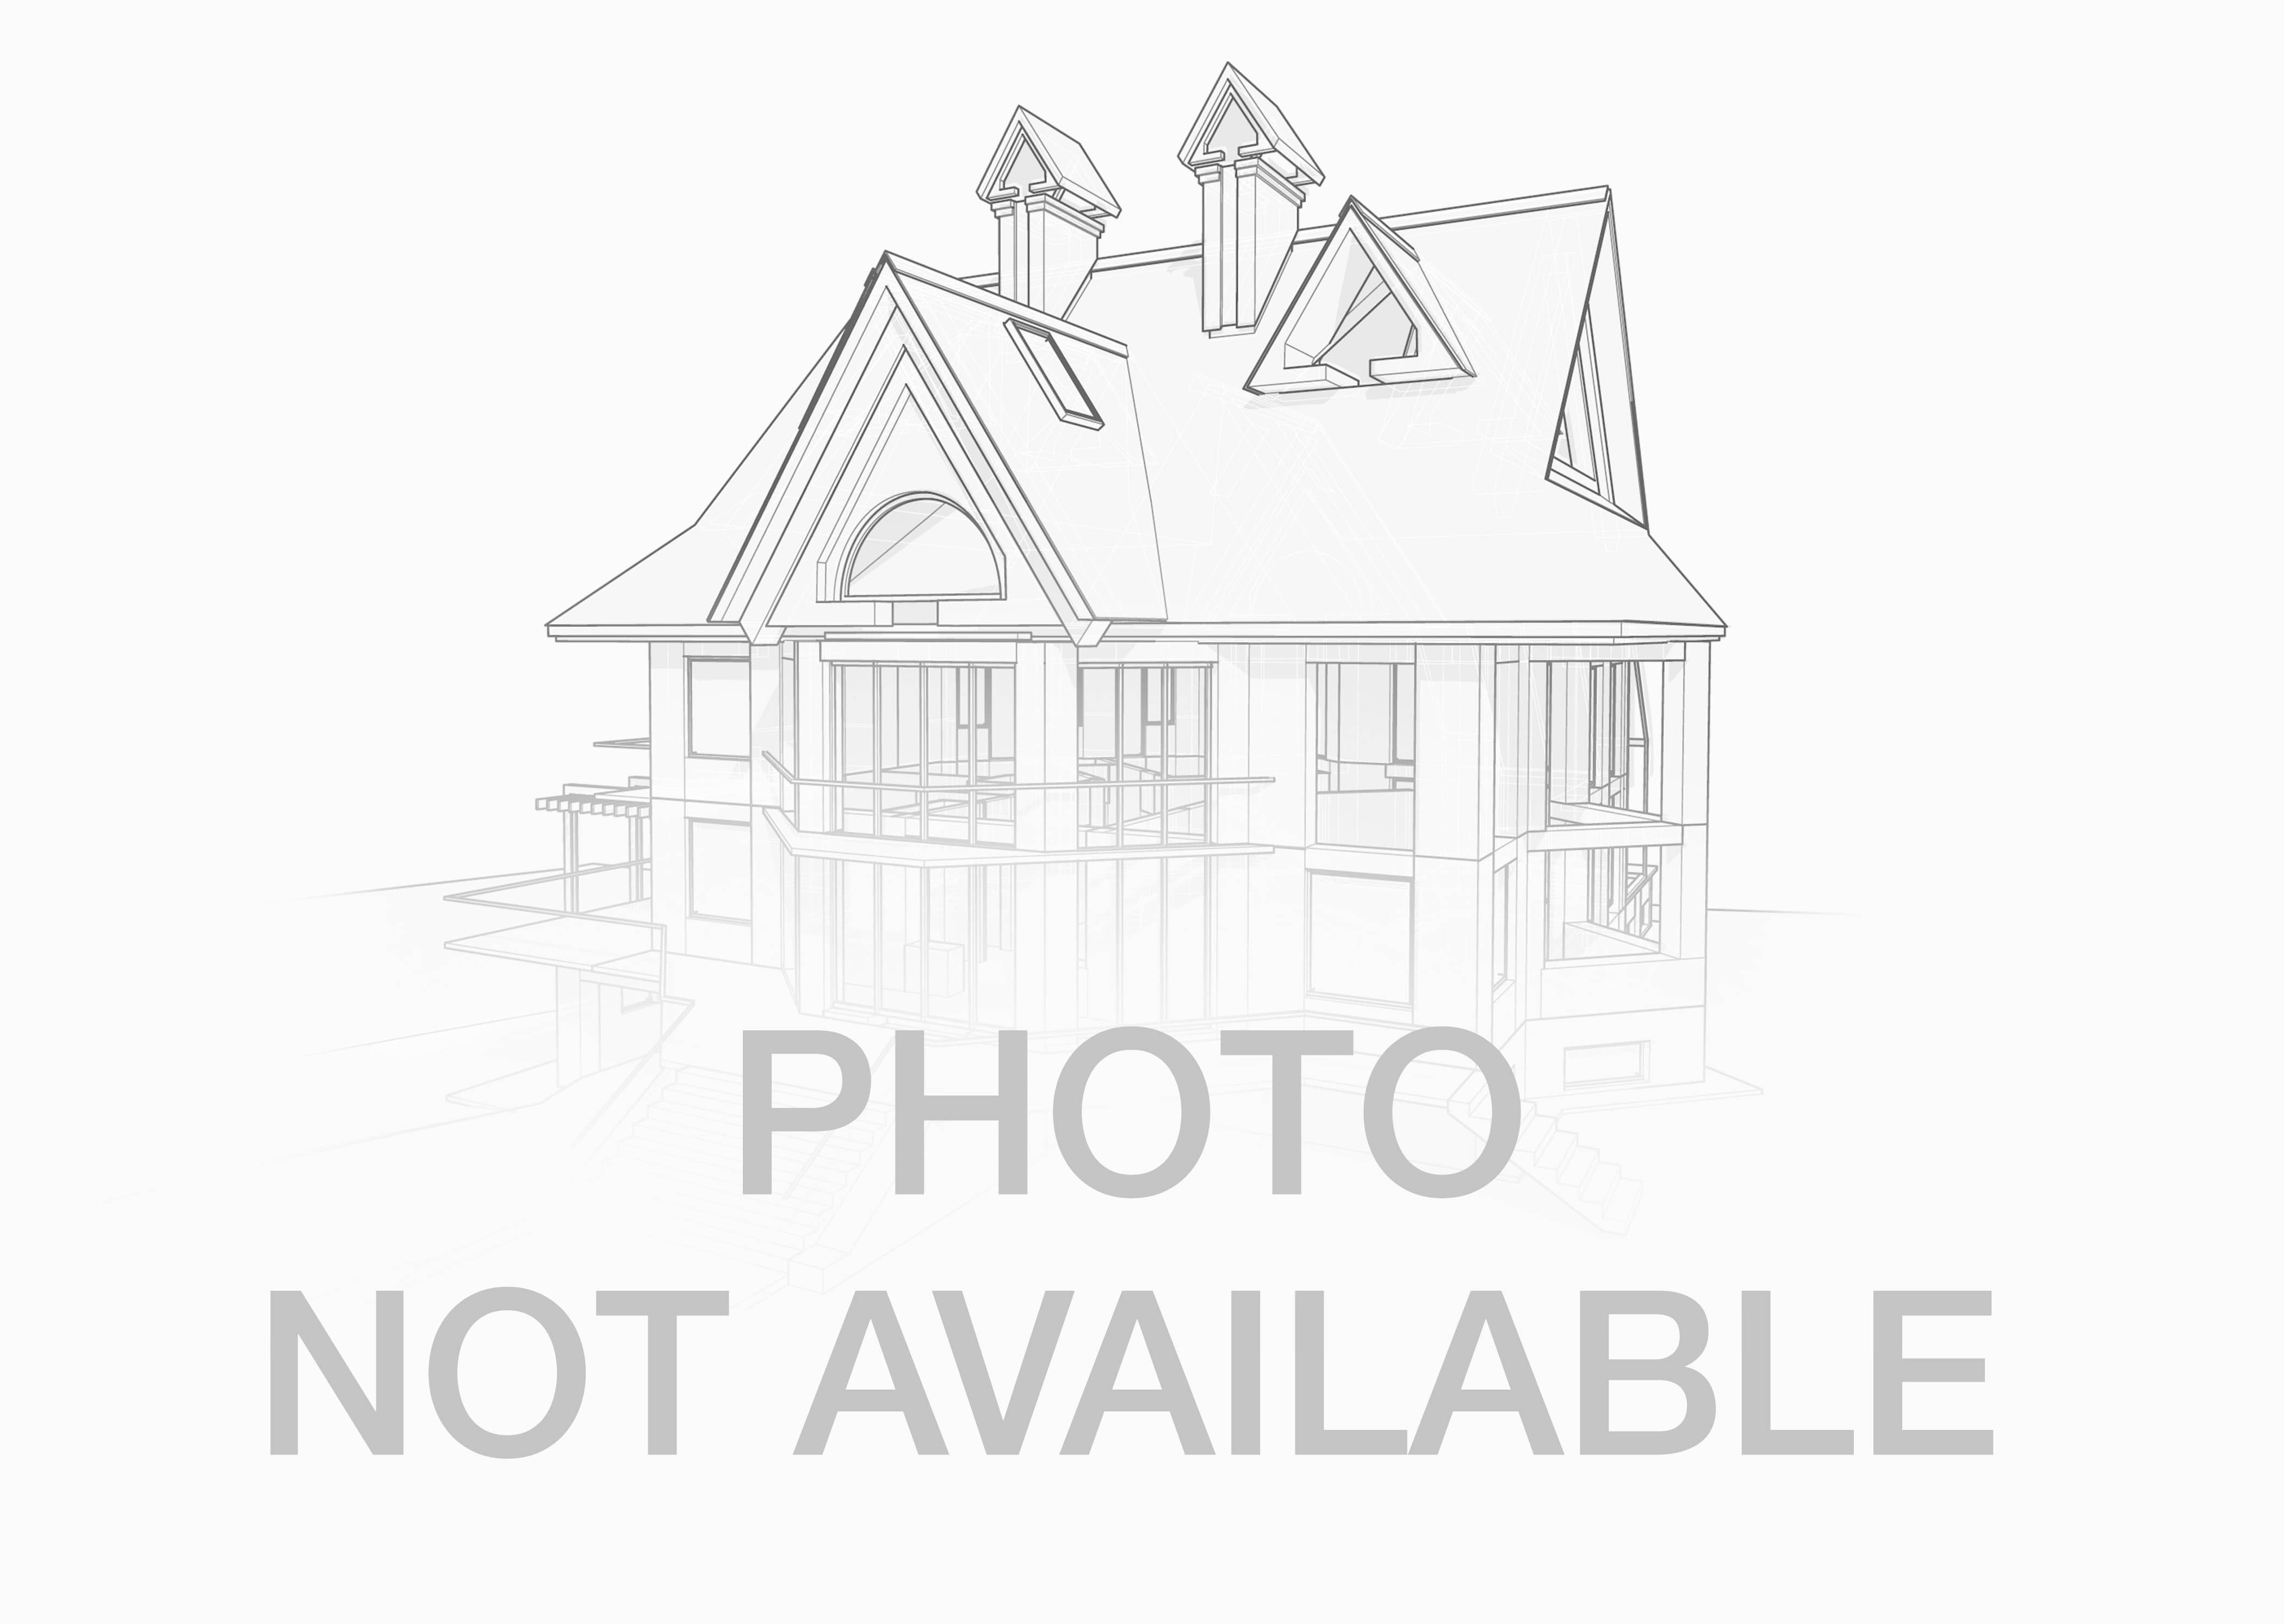 Listings Search Results from Linda Whitmore with Hometown